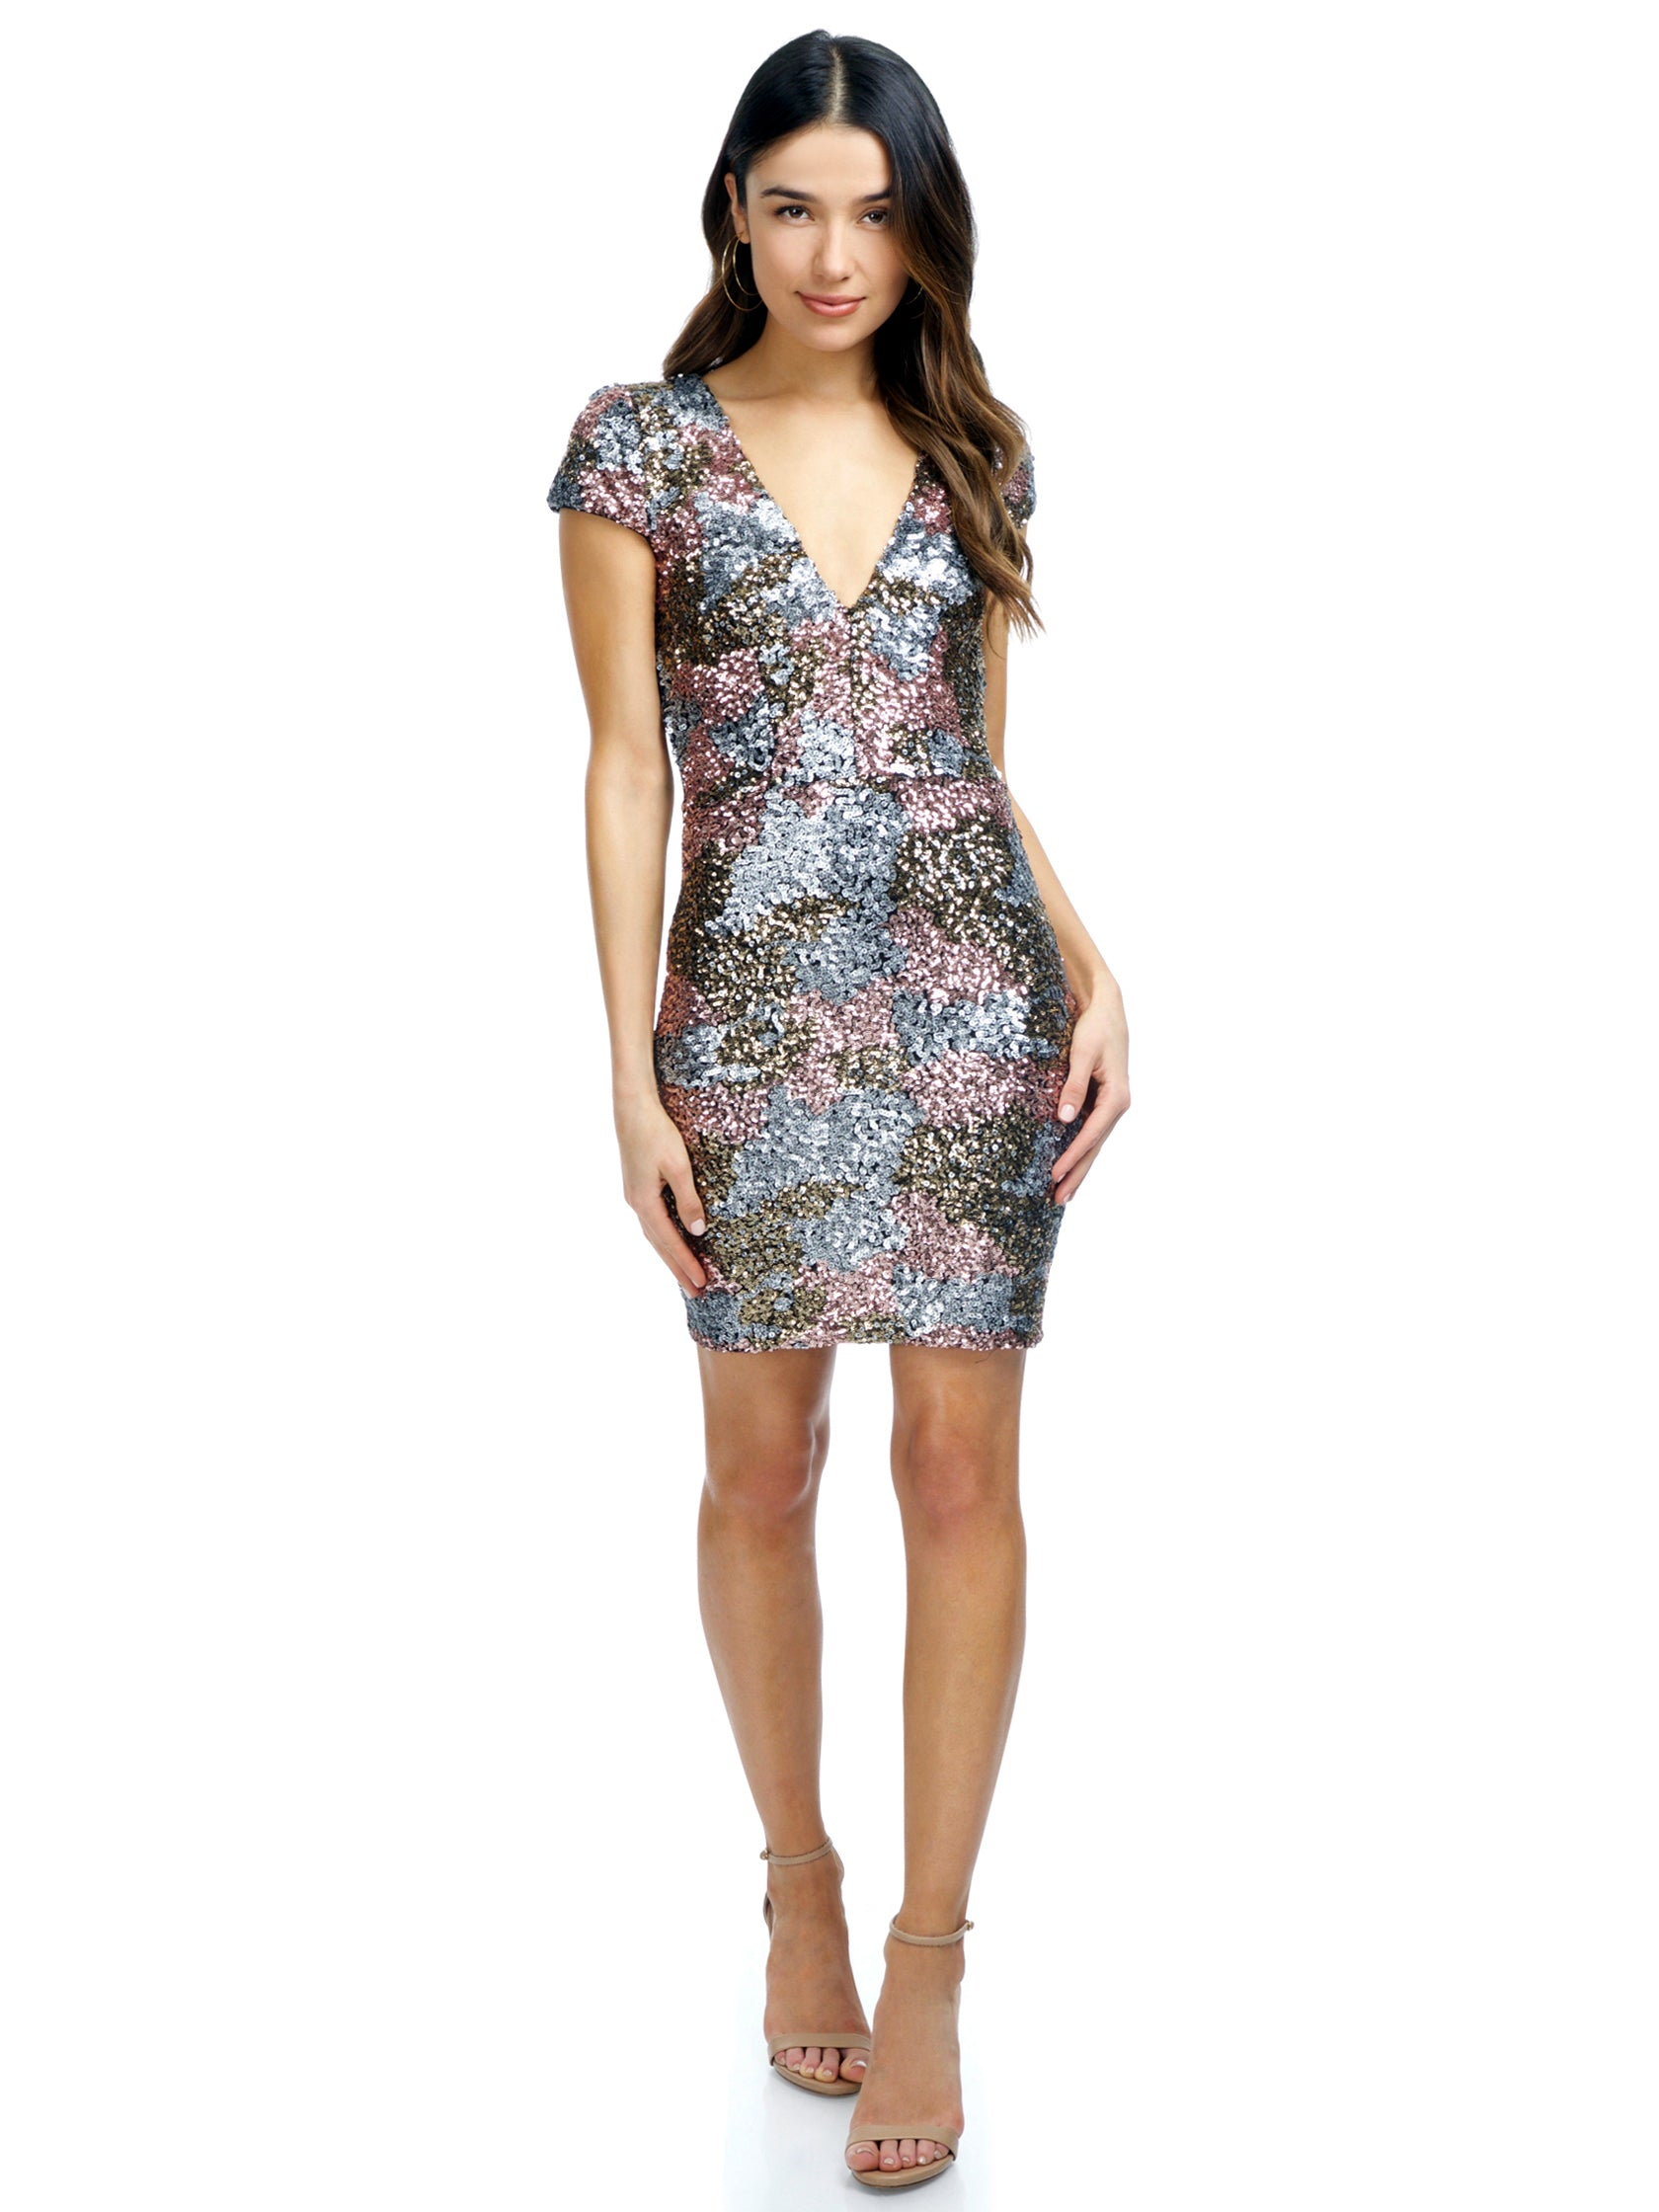 Girl outfit in a dress rental from Dress the Population called Victoria Sequin Dress